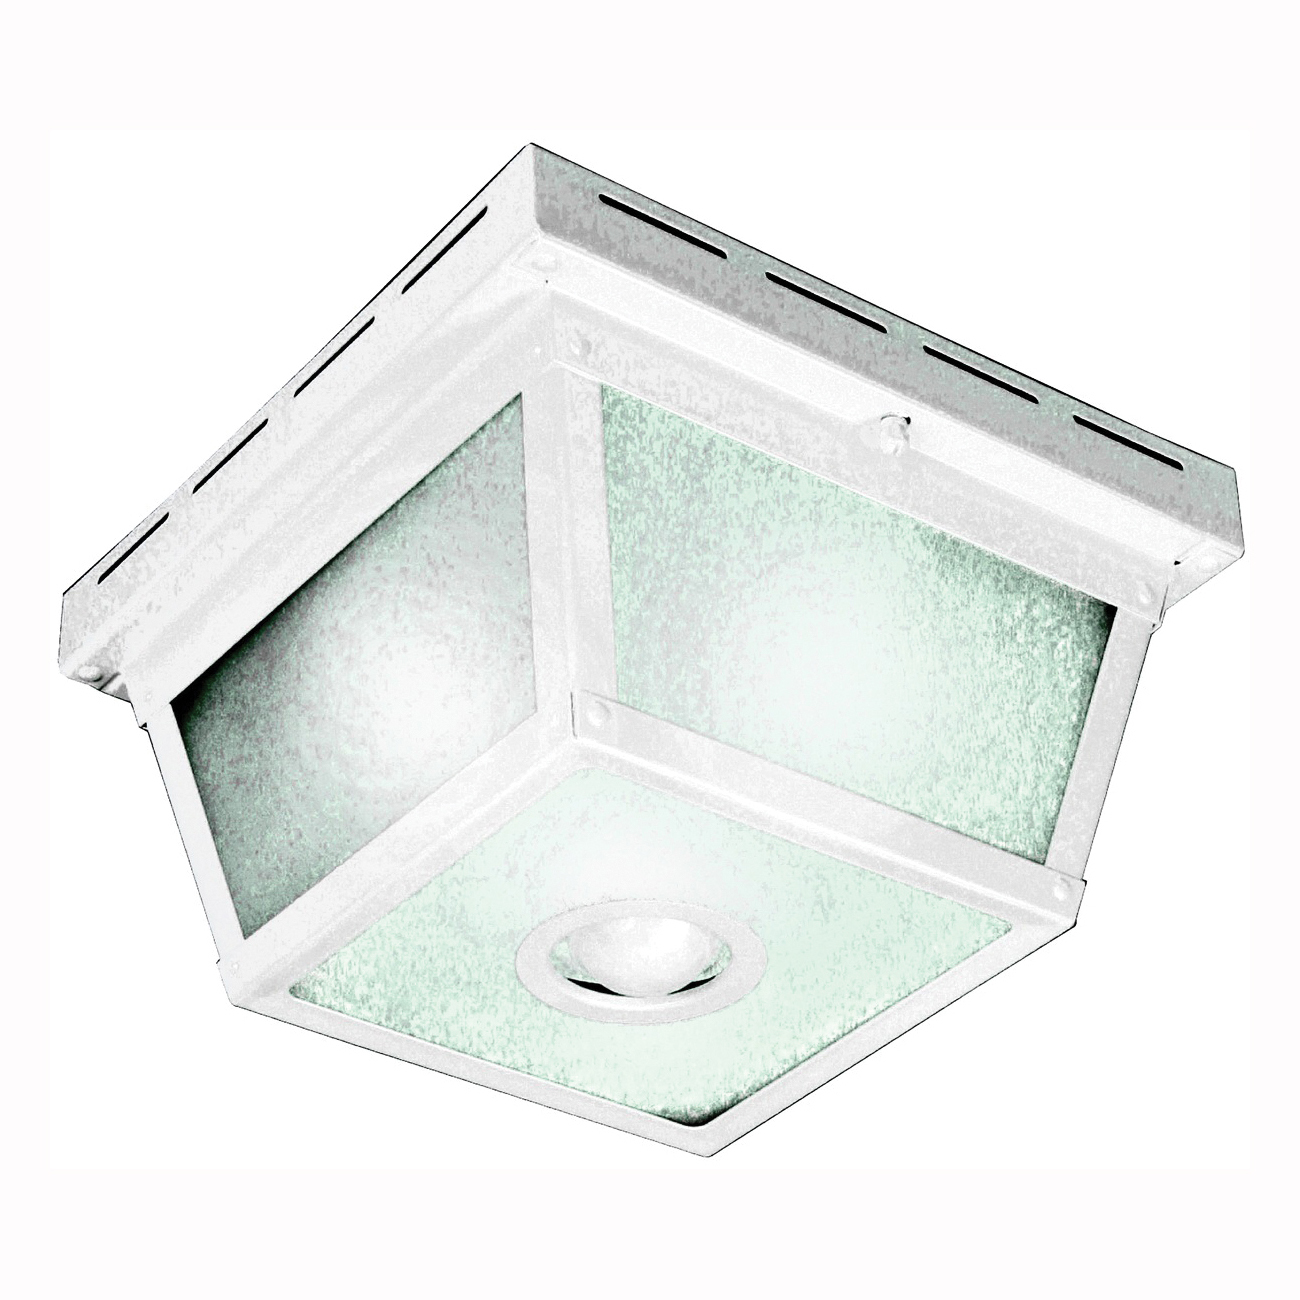 Picture of Heath Zenith HZ-4305-WH Motion Activated Decorative Light, 120 V, 25 W, Incandescent Lamp, Metal Fixture, White